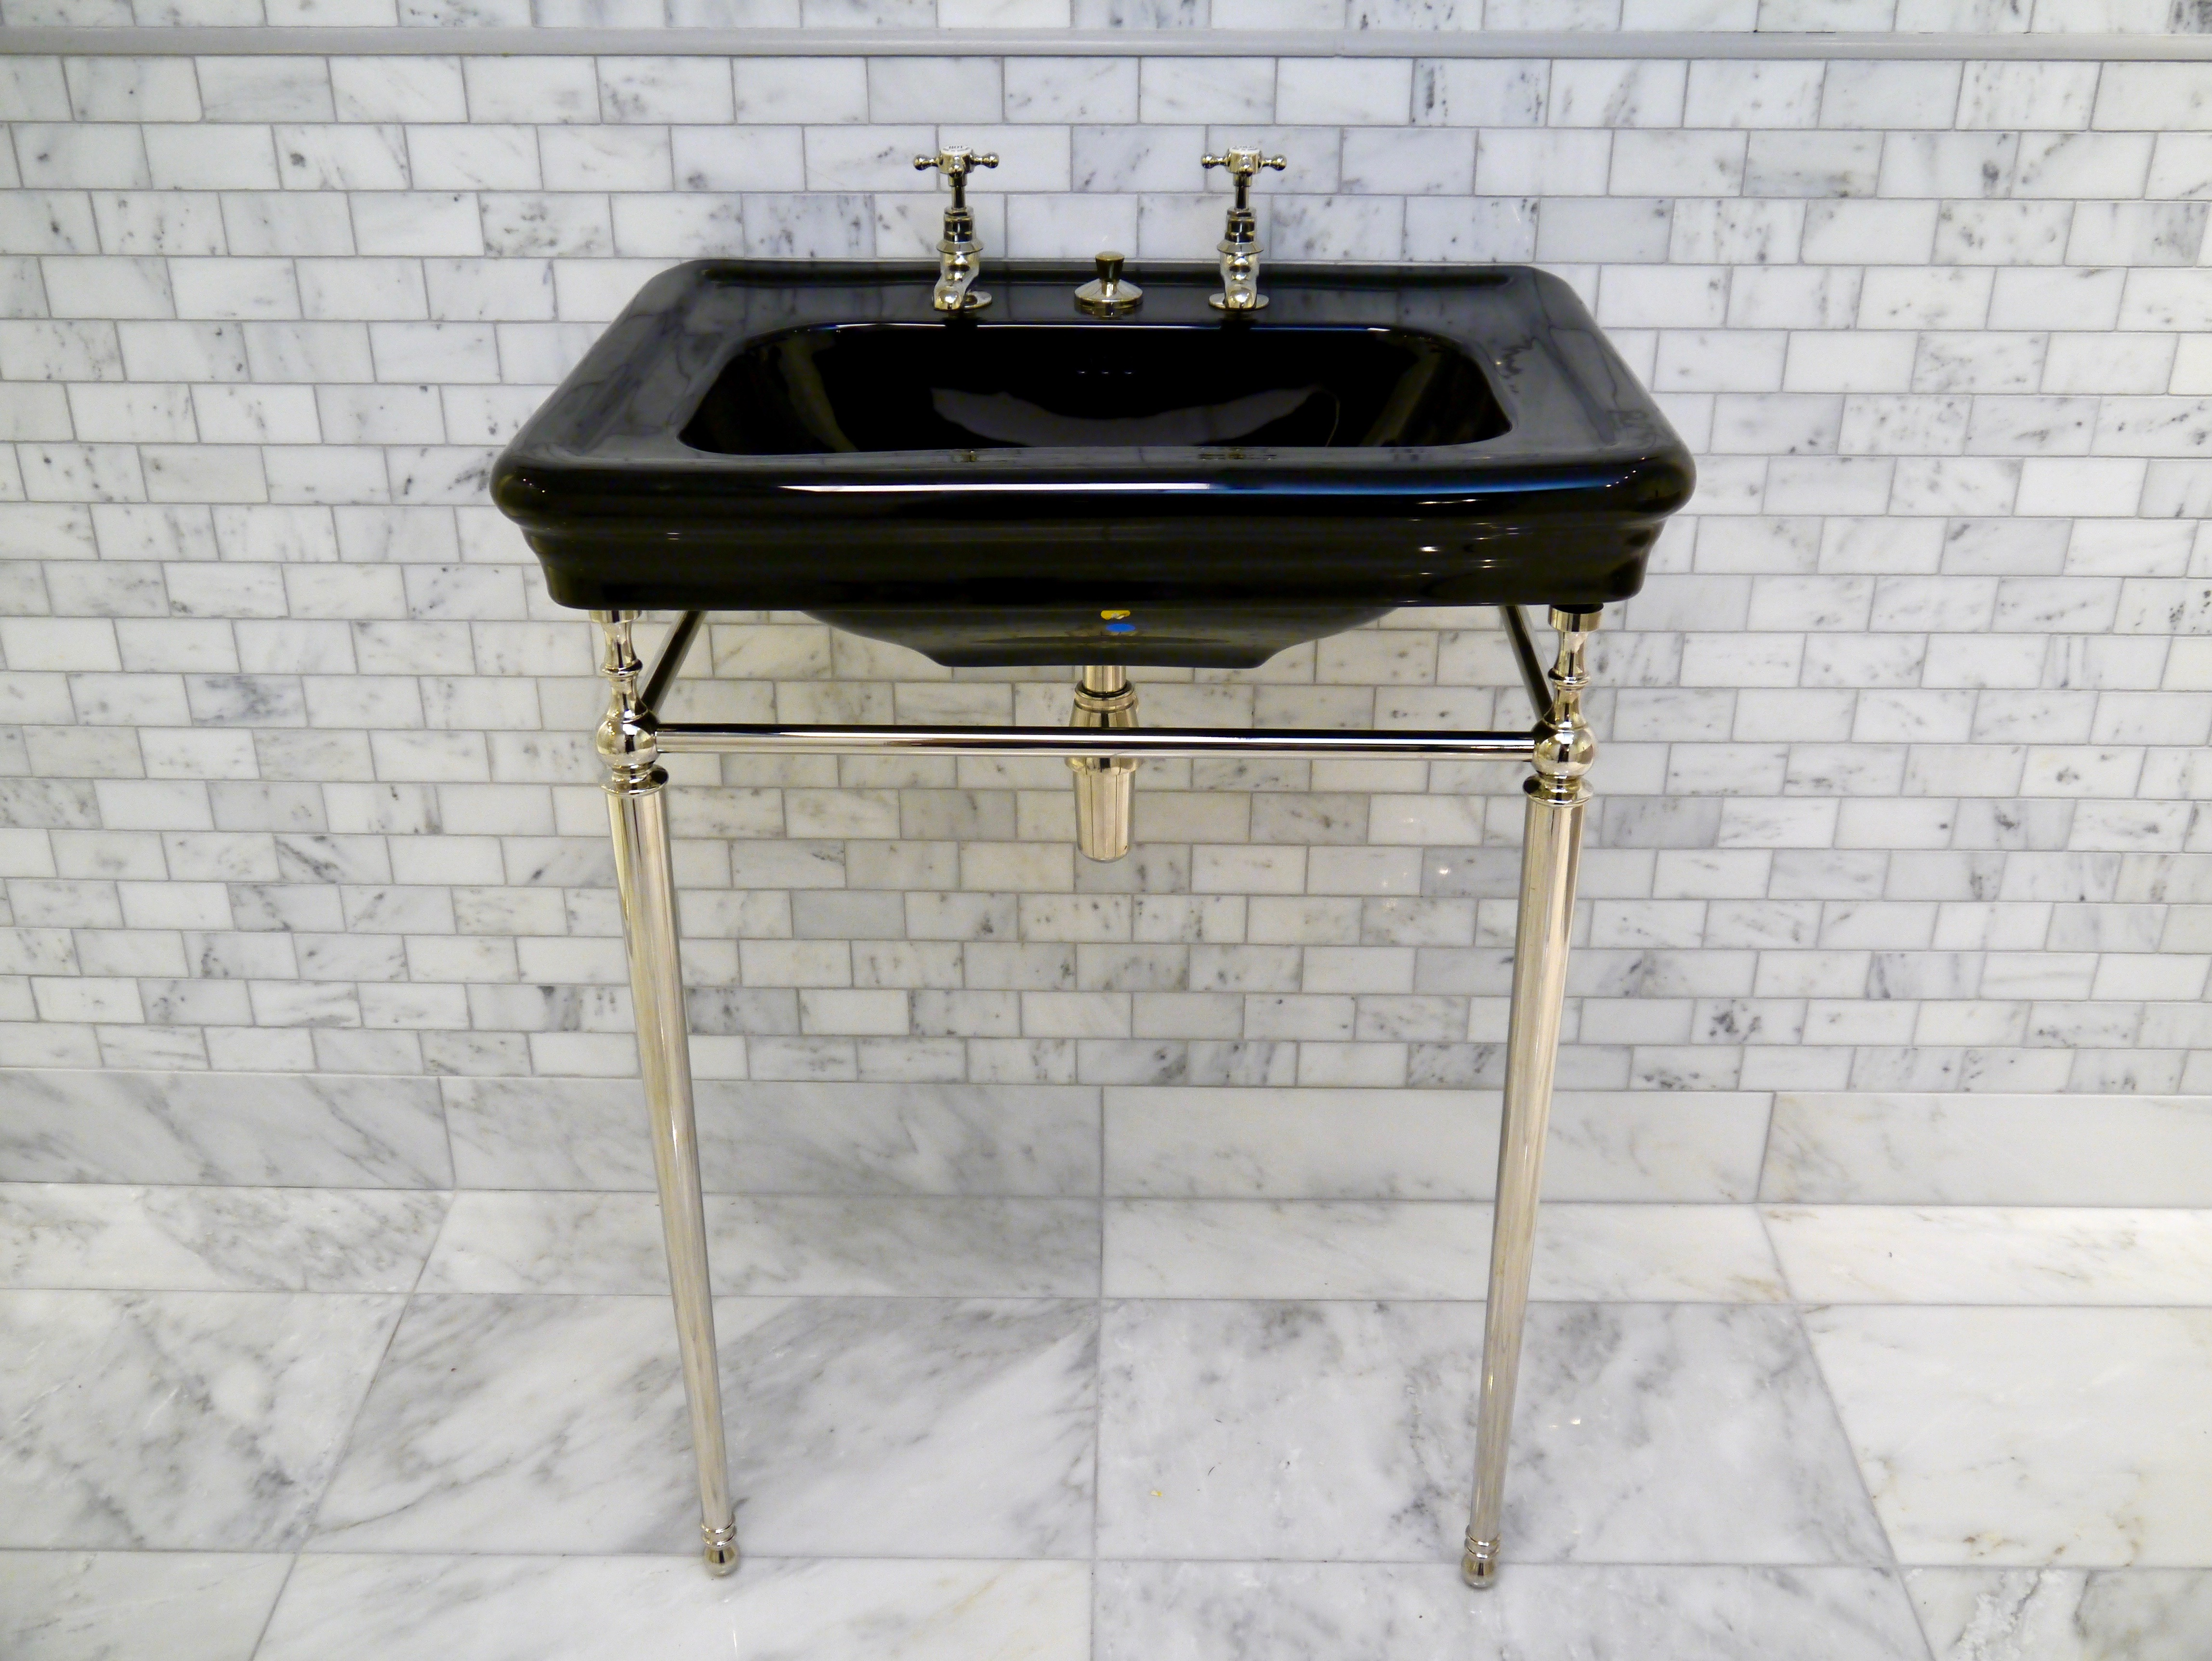 black basin on nickel frame traditional bathroom design